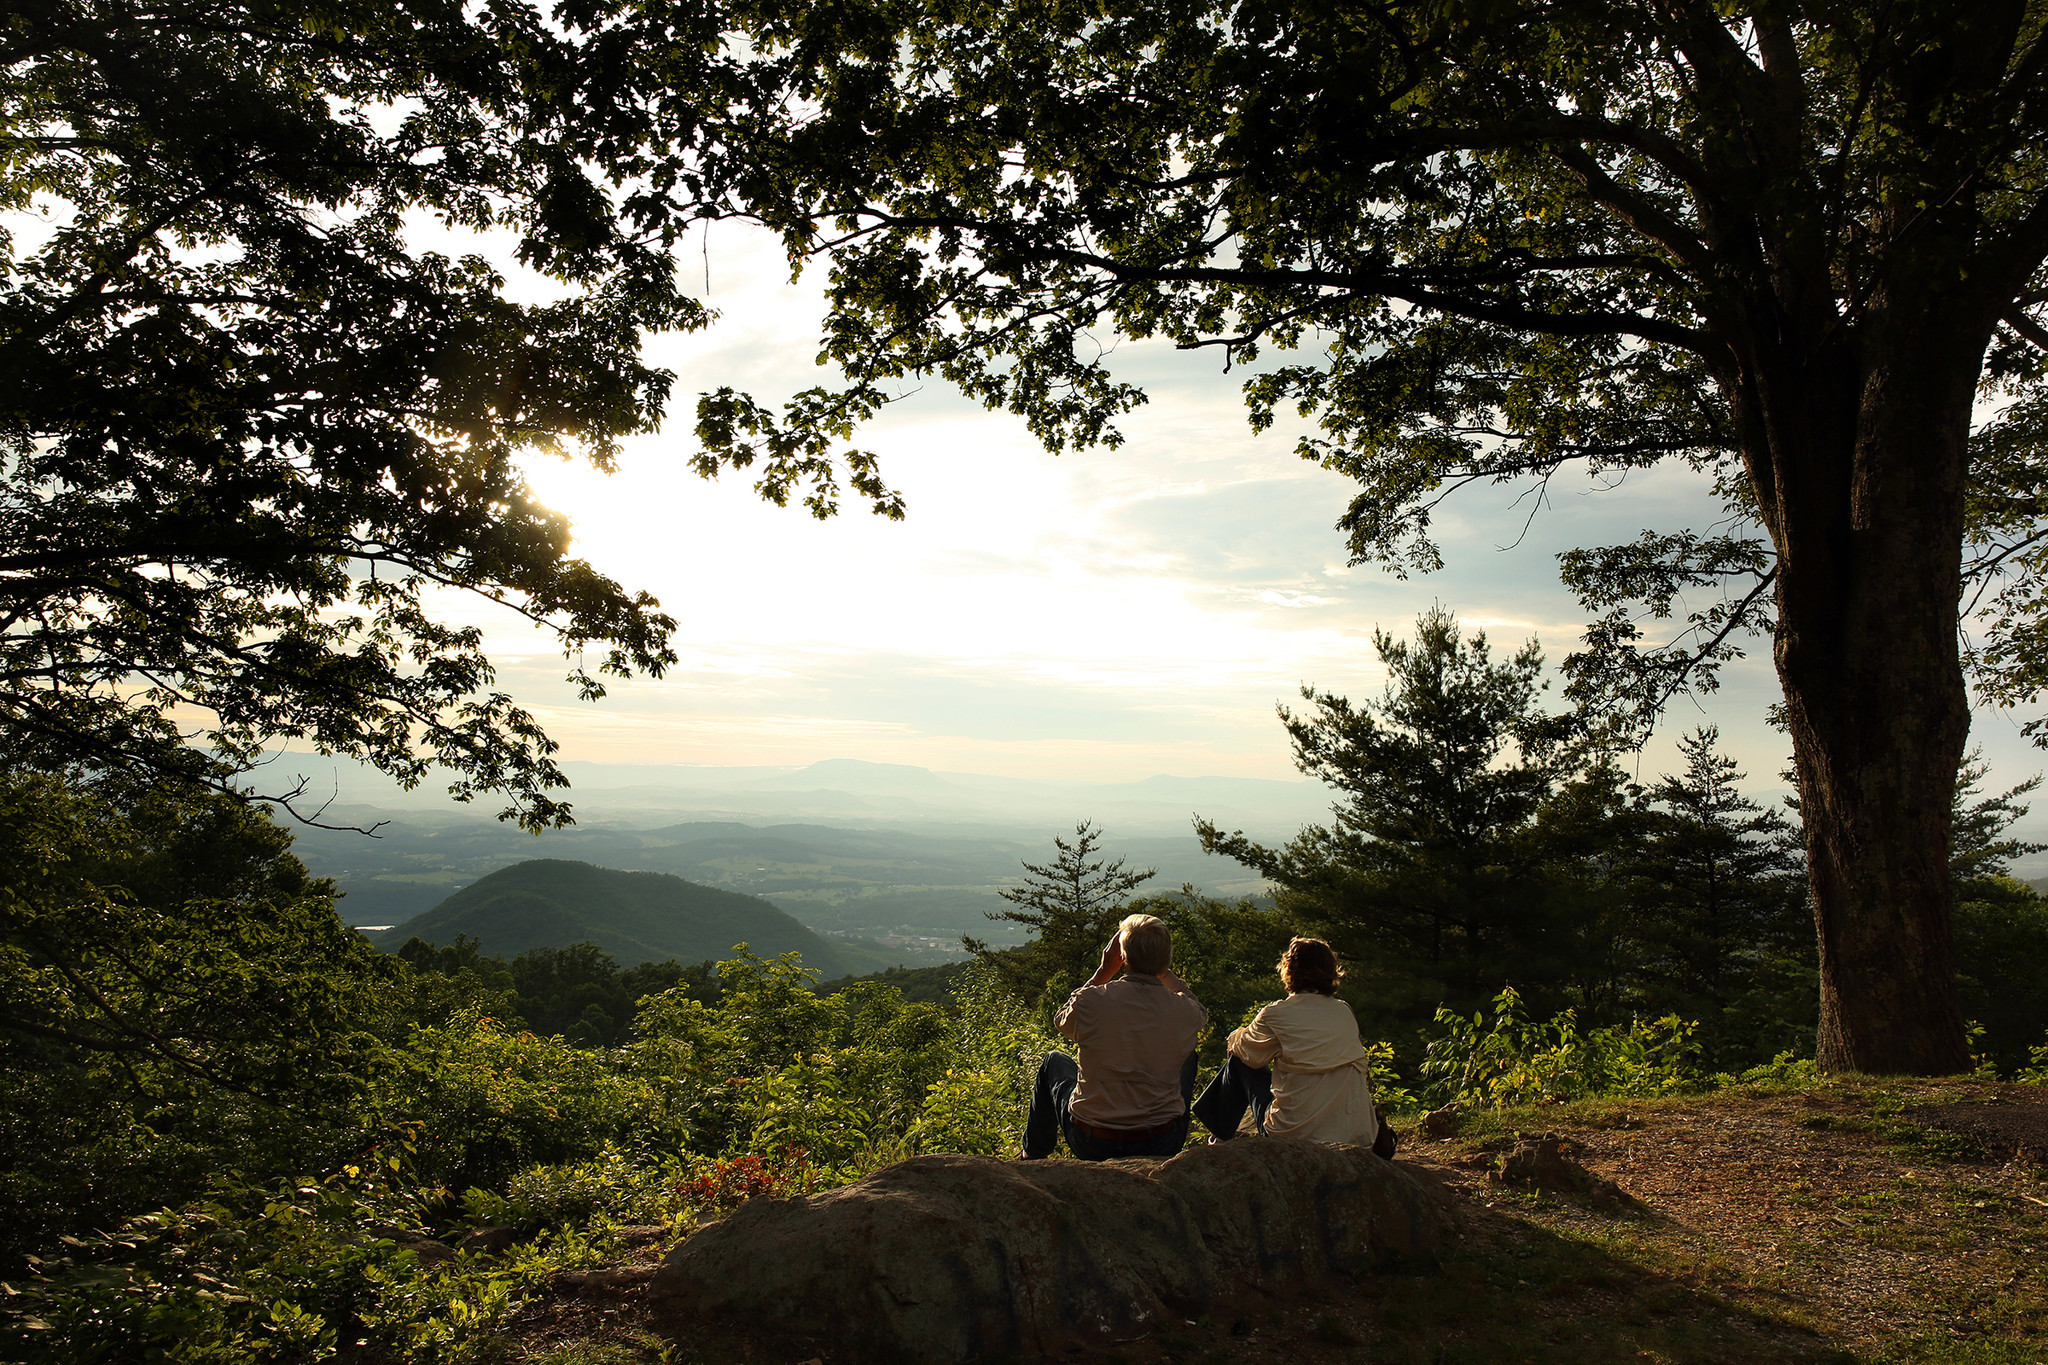 Robert Gorman and Carolyn Portier-Gorman of Thibodaux, La., admire the view from the Blue Ridge Parkway outside Roanoke, Va.